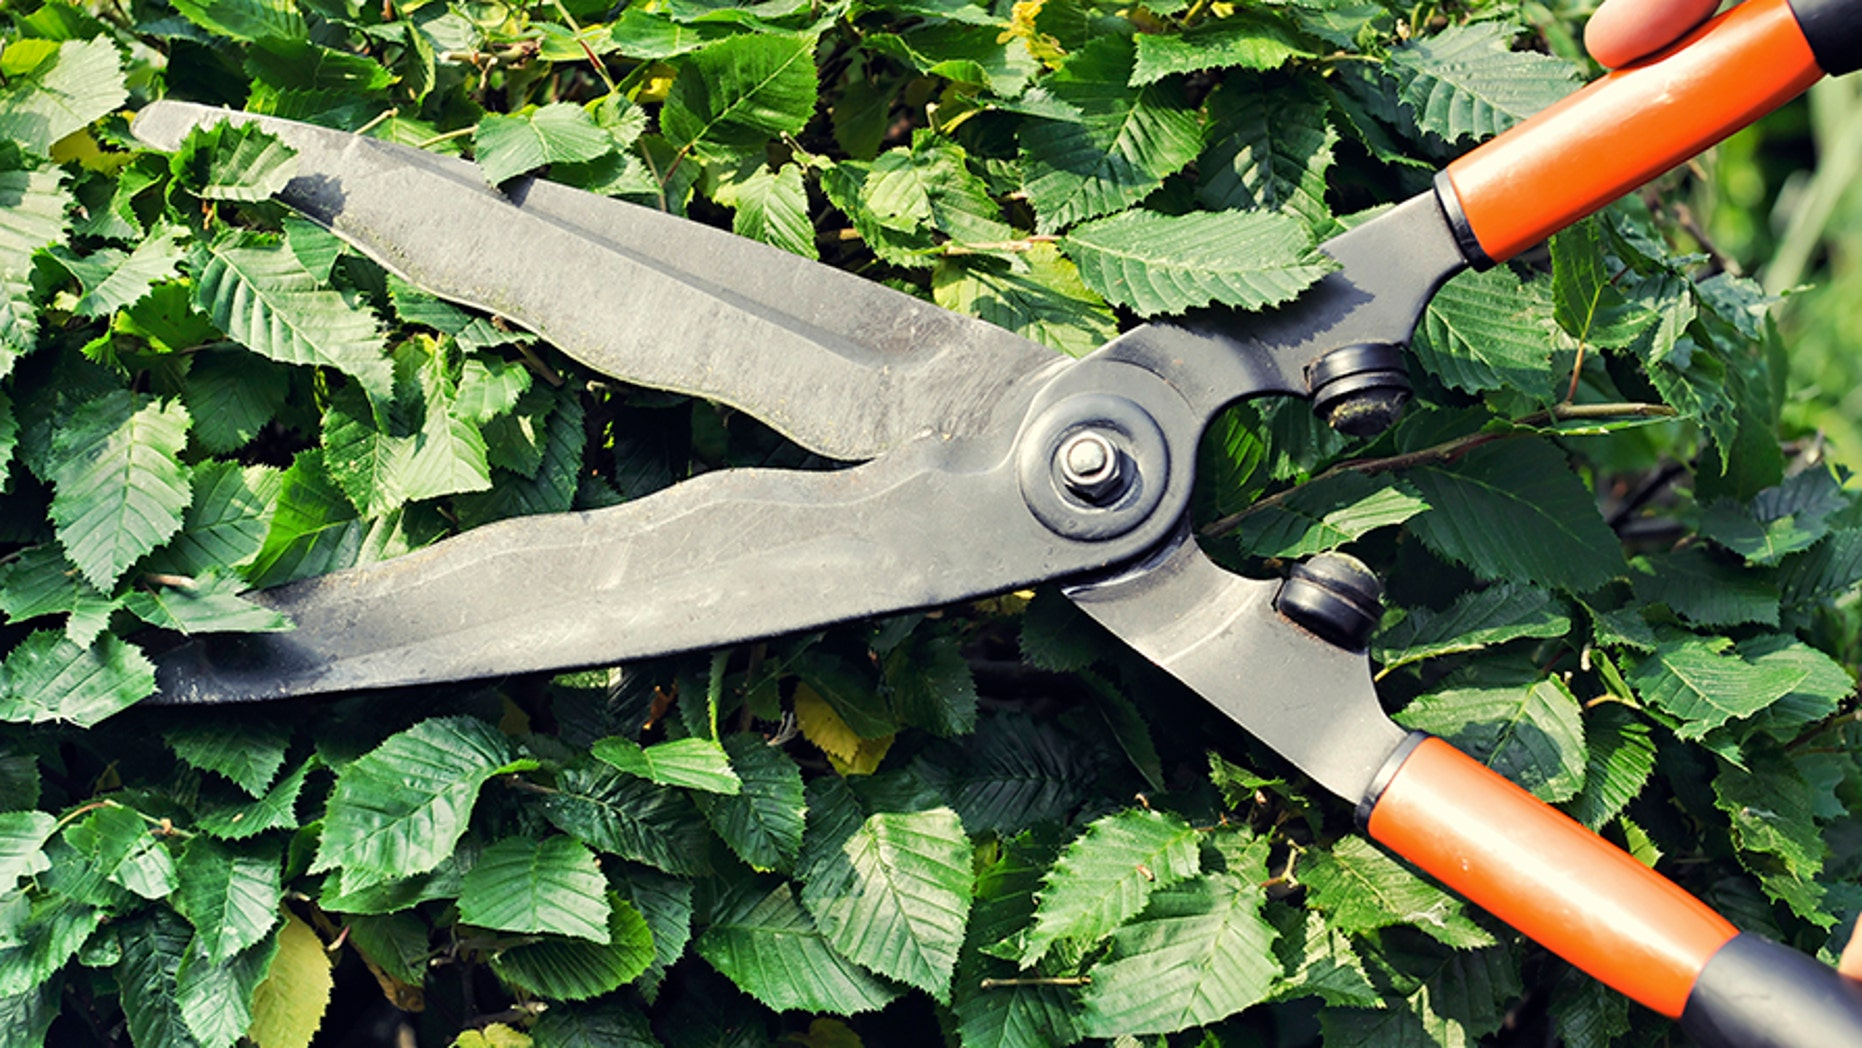 Brenda Barattini, 26, has been accused of cutting off a 40-year-old man's penis with gardening scissors.